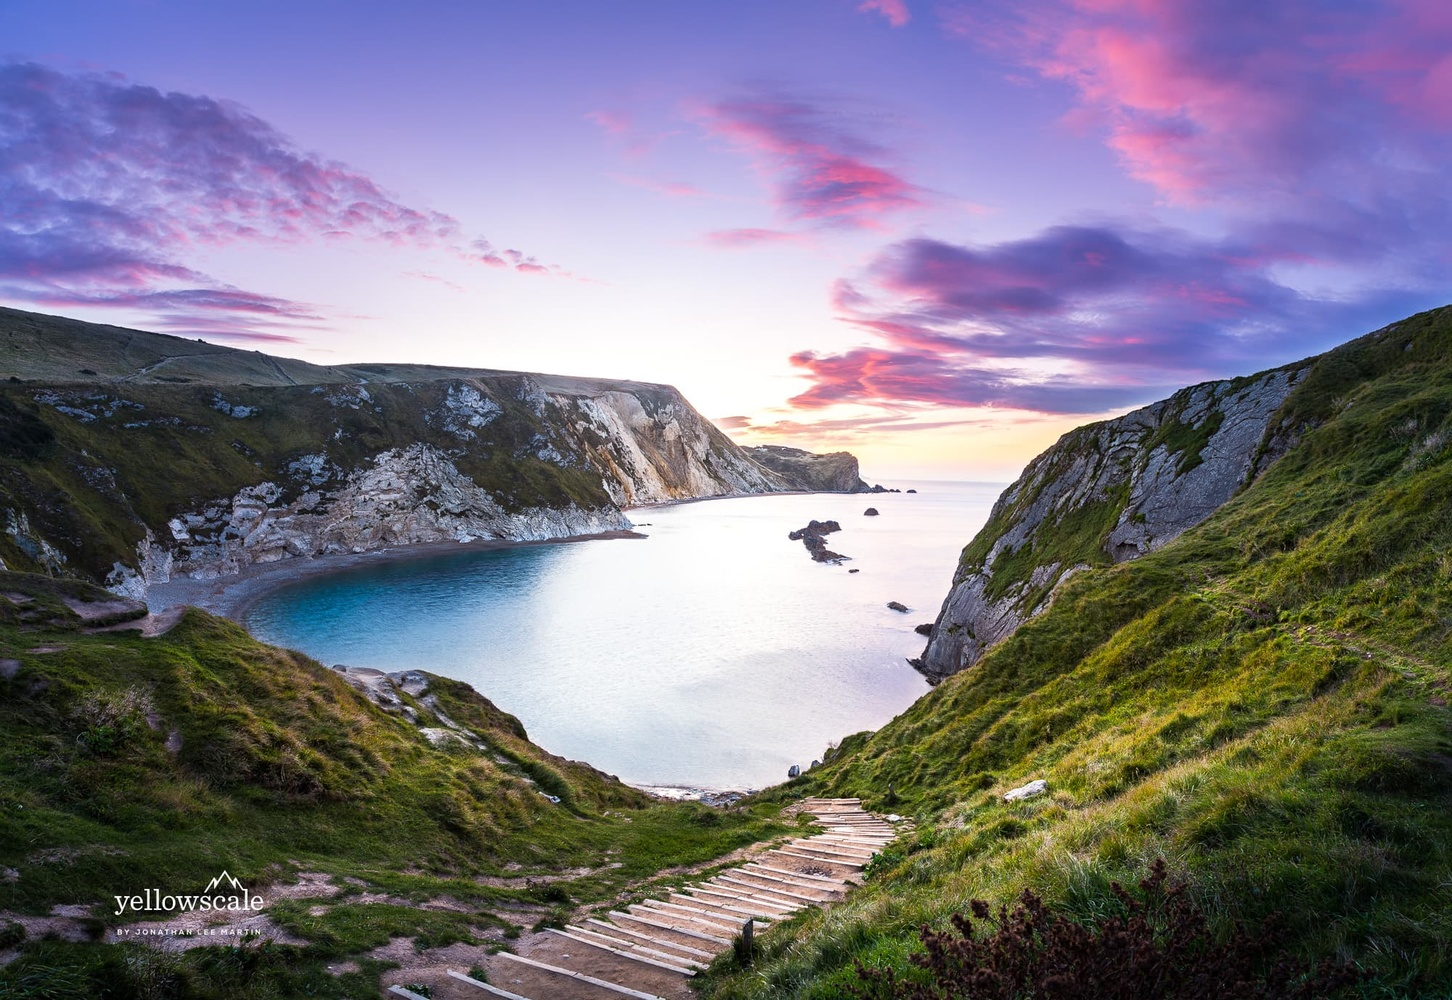 Man O' War Beach at Lulworth Cove, England